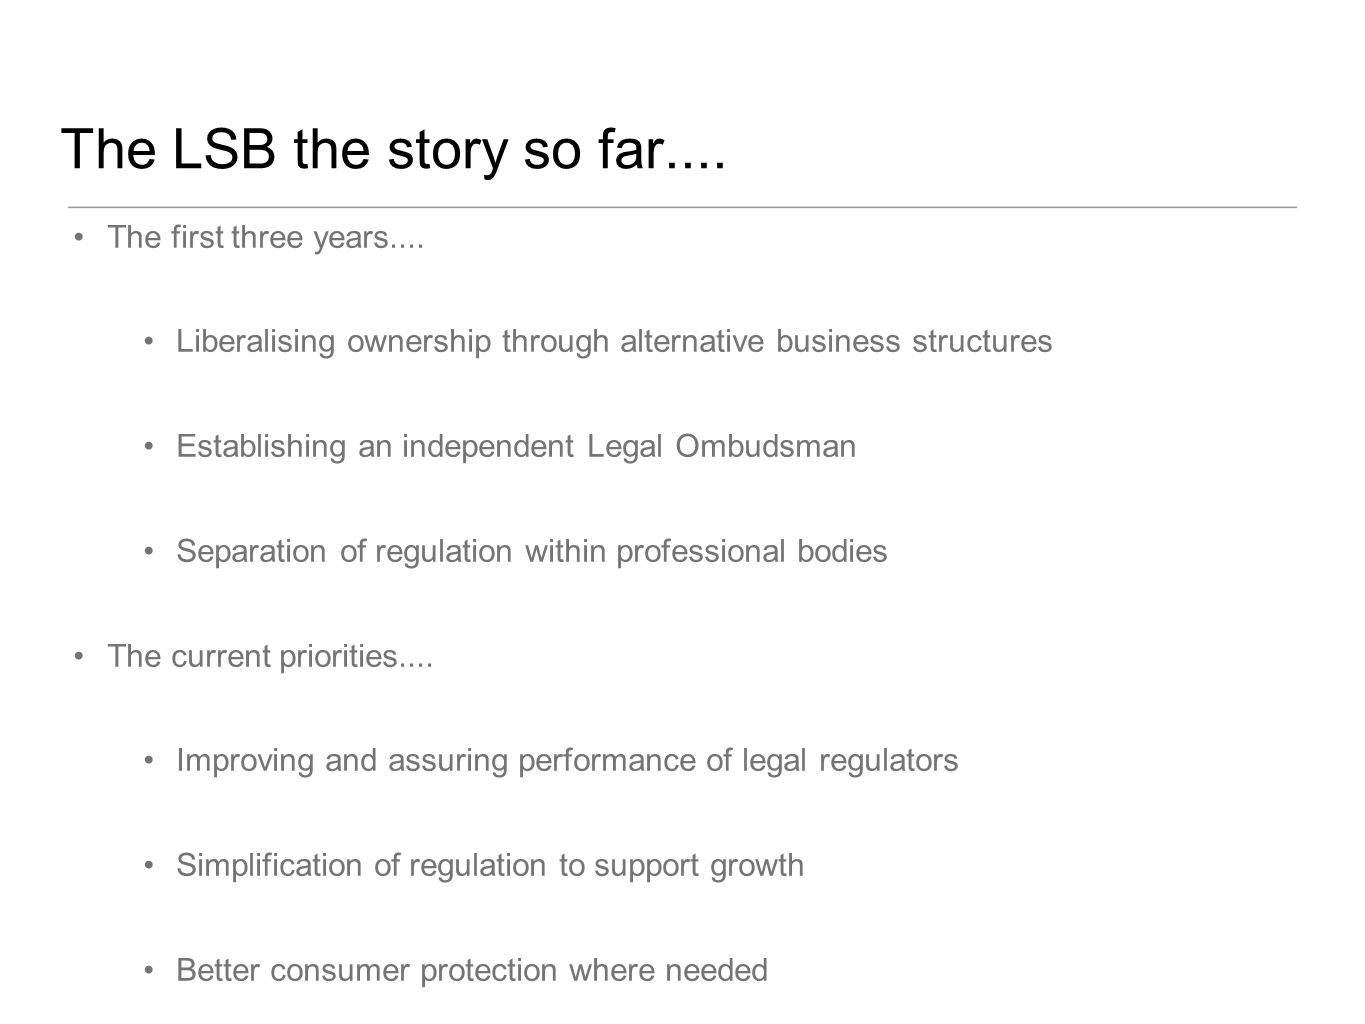 The LSB the story so far.... The first three years....